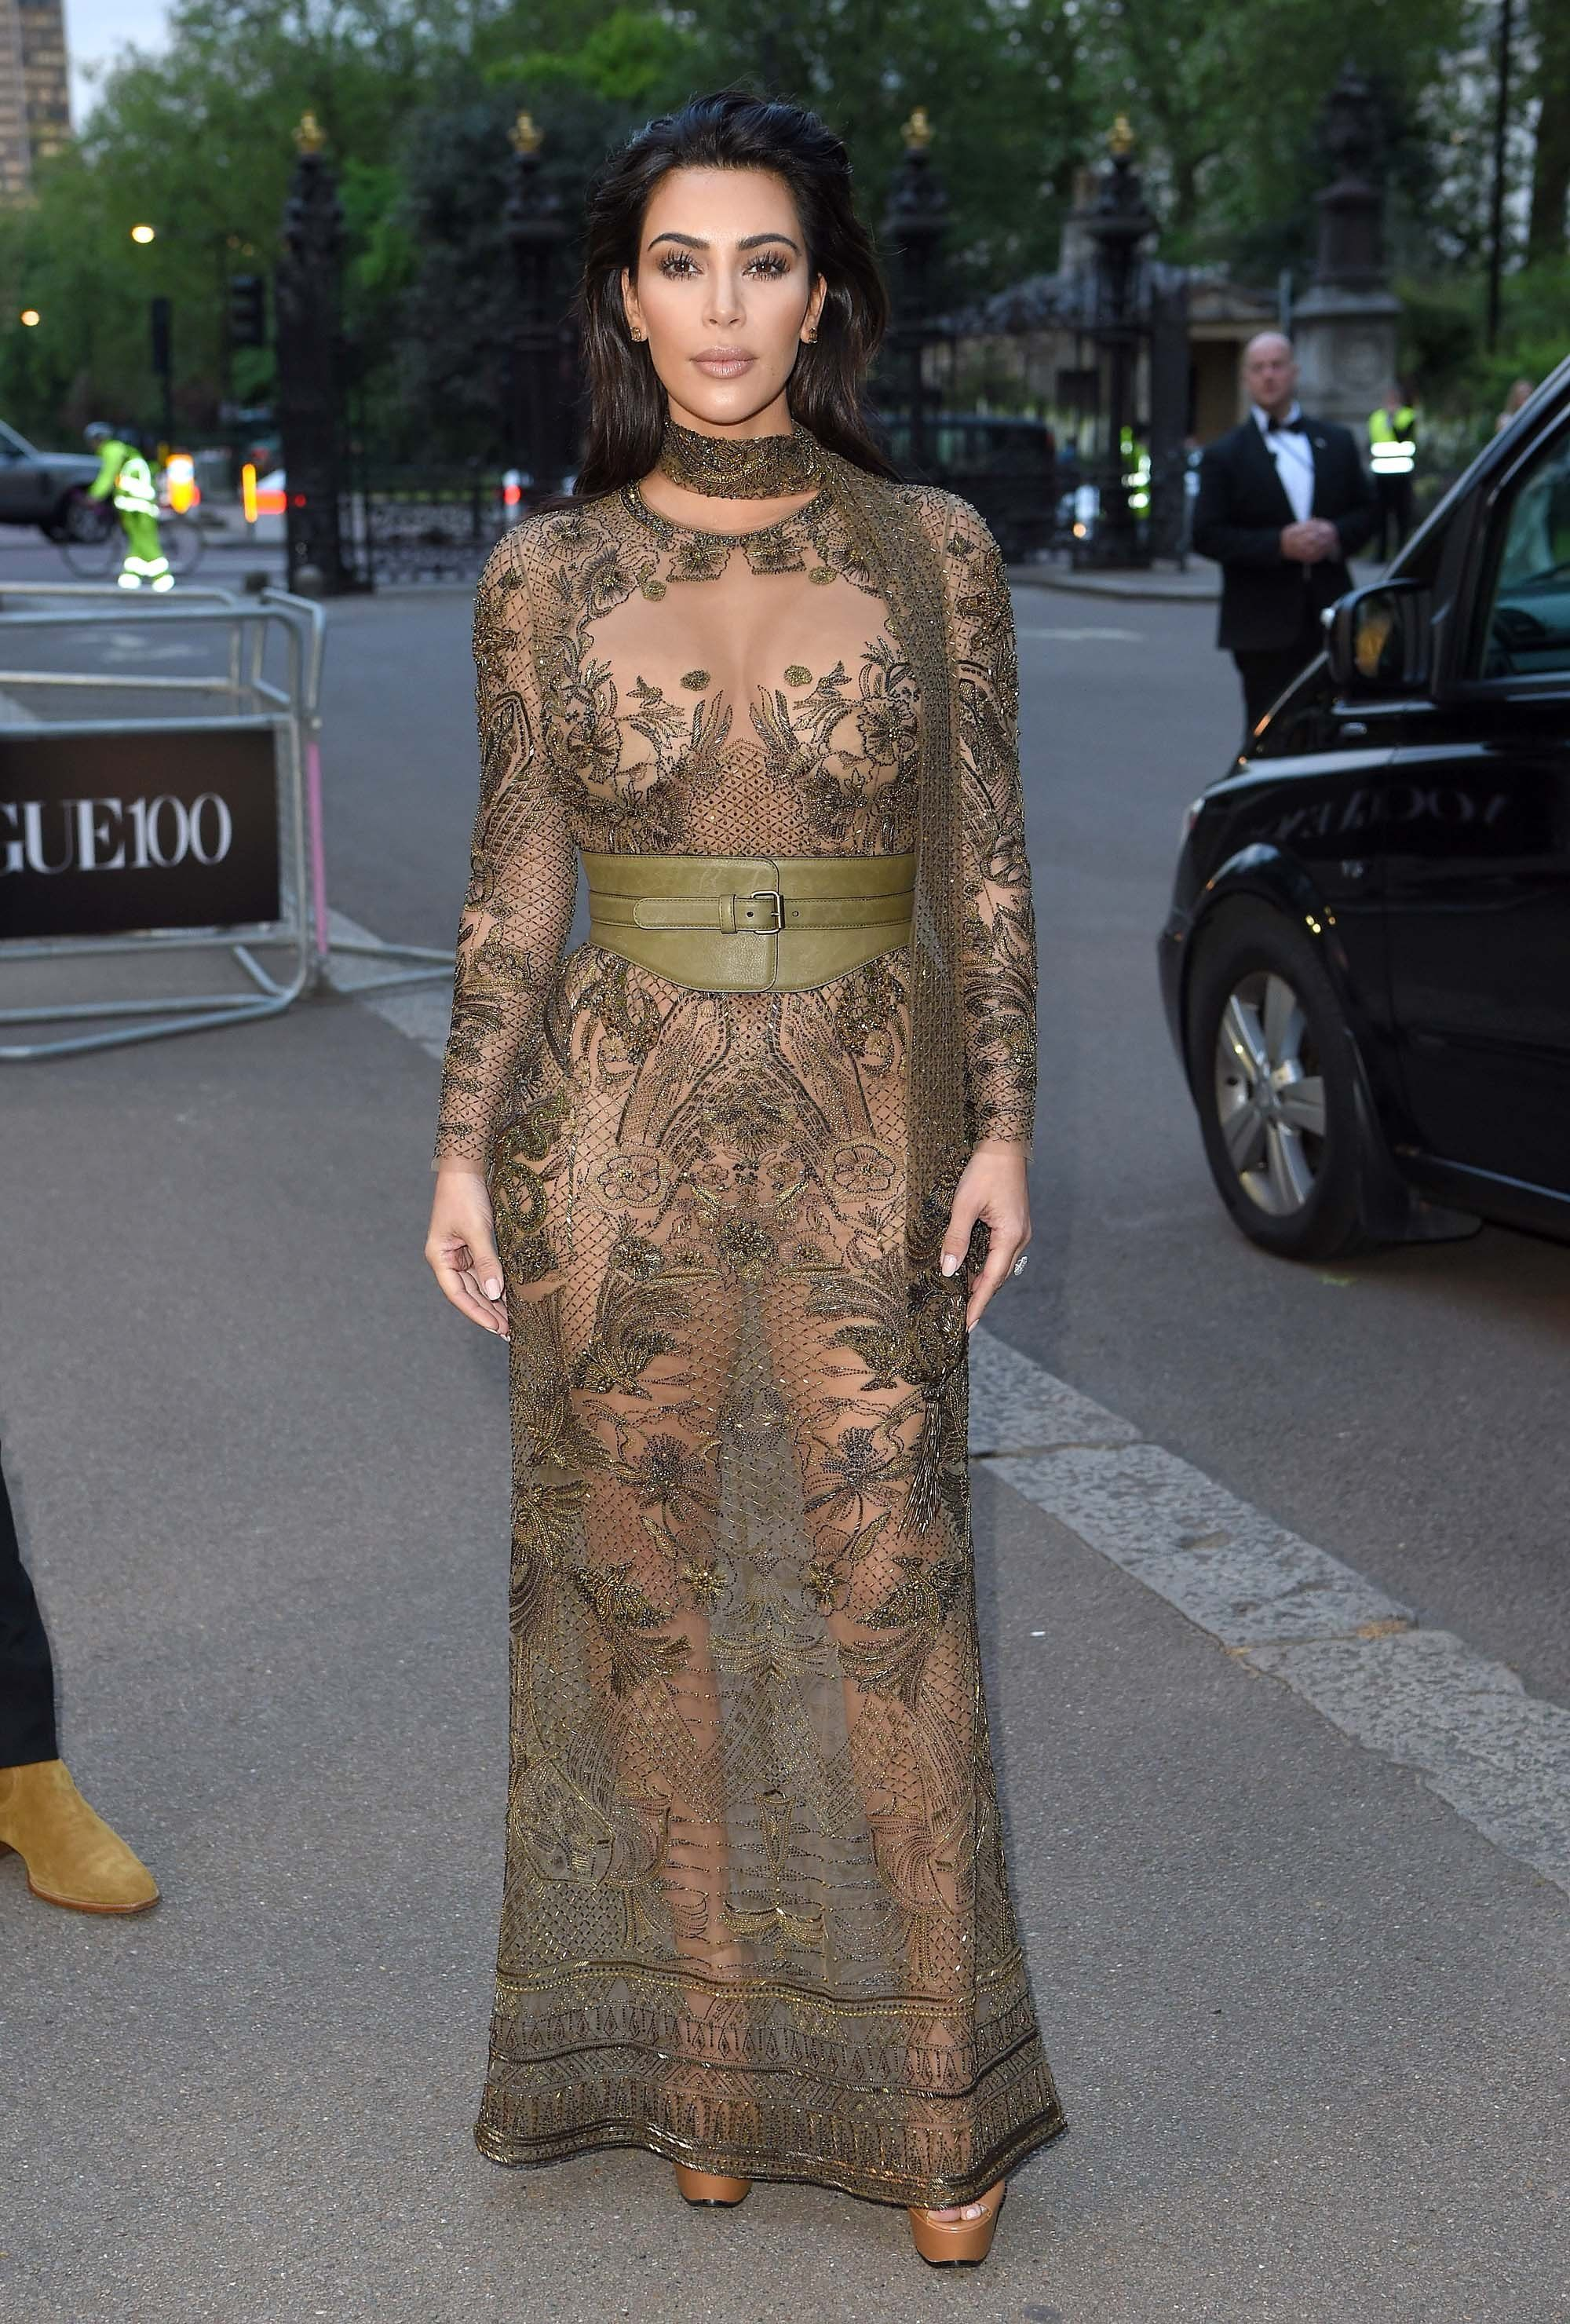 7907e181a3 Kim Kardashian West Pulls Off the Barely There Dress With Elegance ...